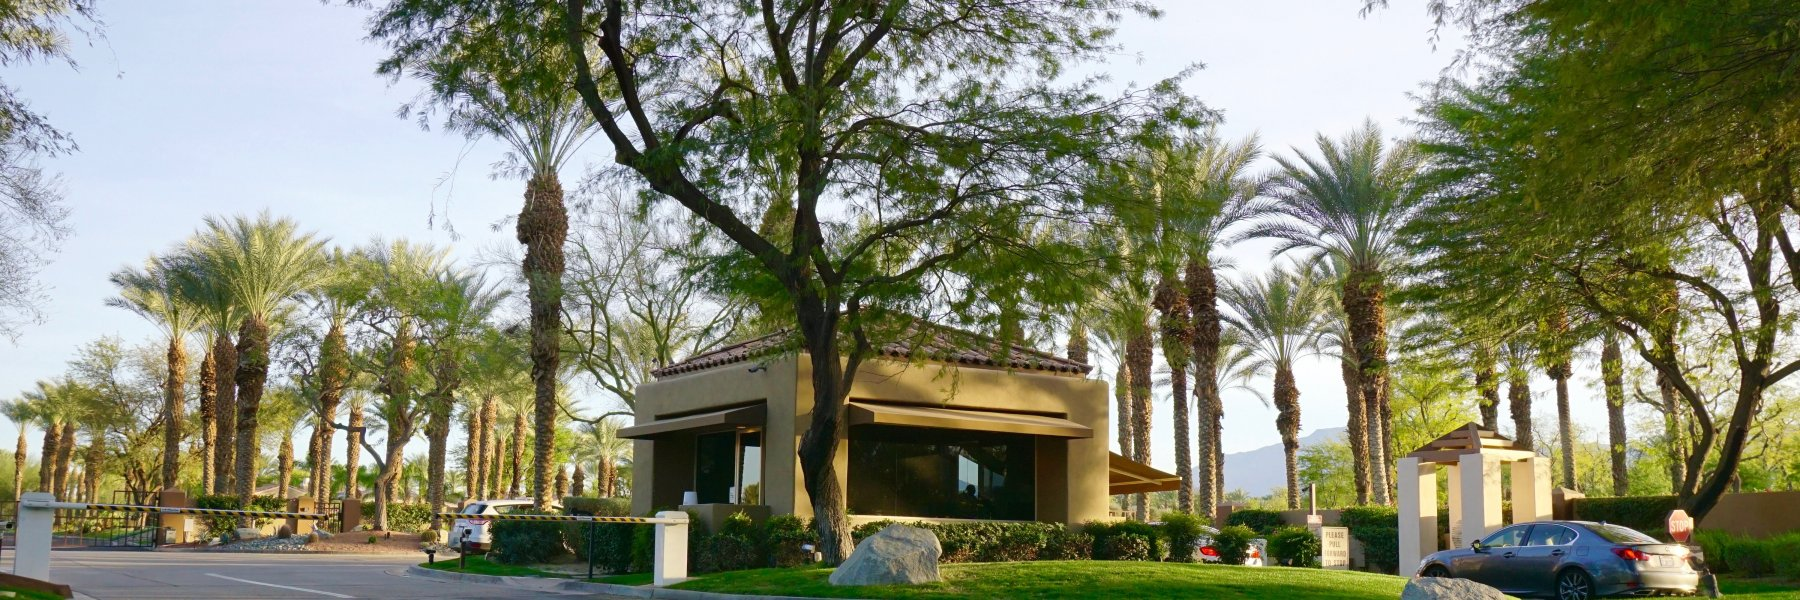 Indian Ridge Country Club is a community of homes in Palm Desert California